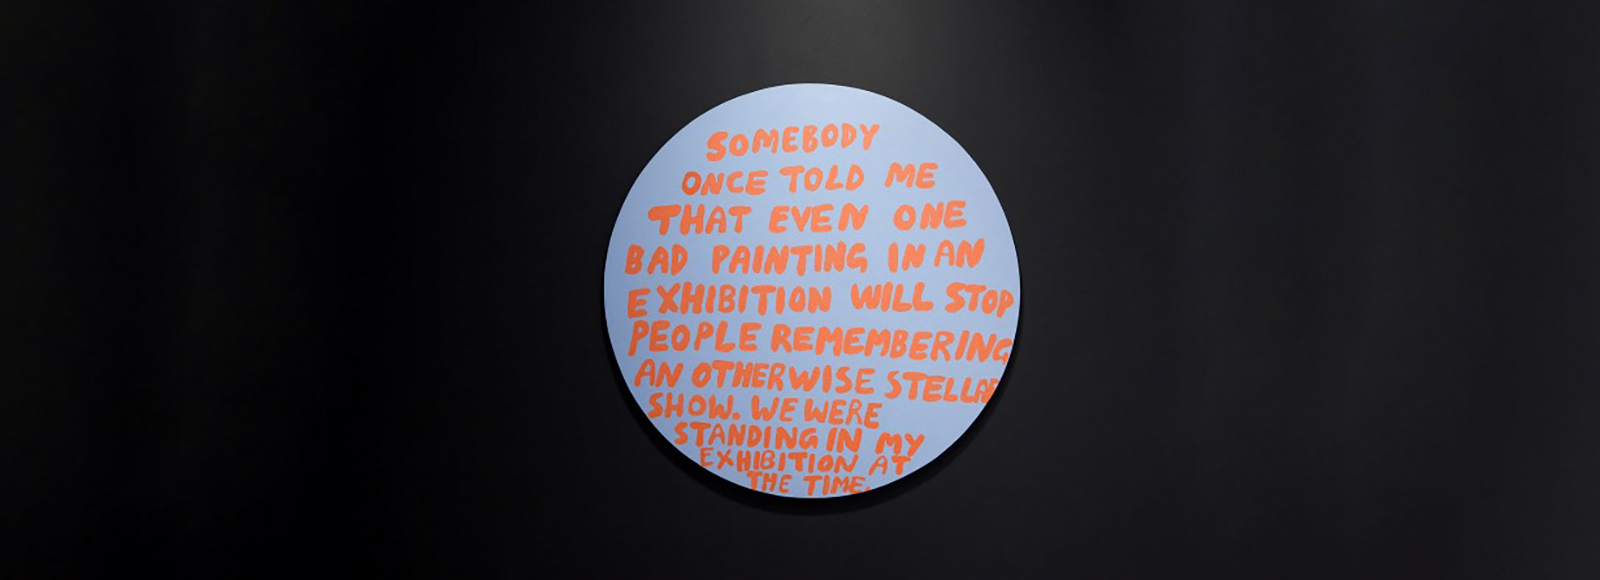 Tom Polo, Somebody Once Told Me, 2011